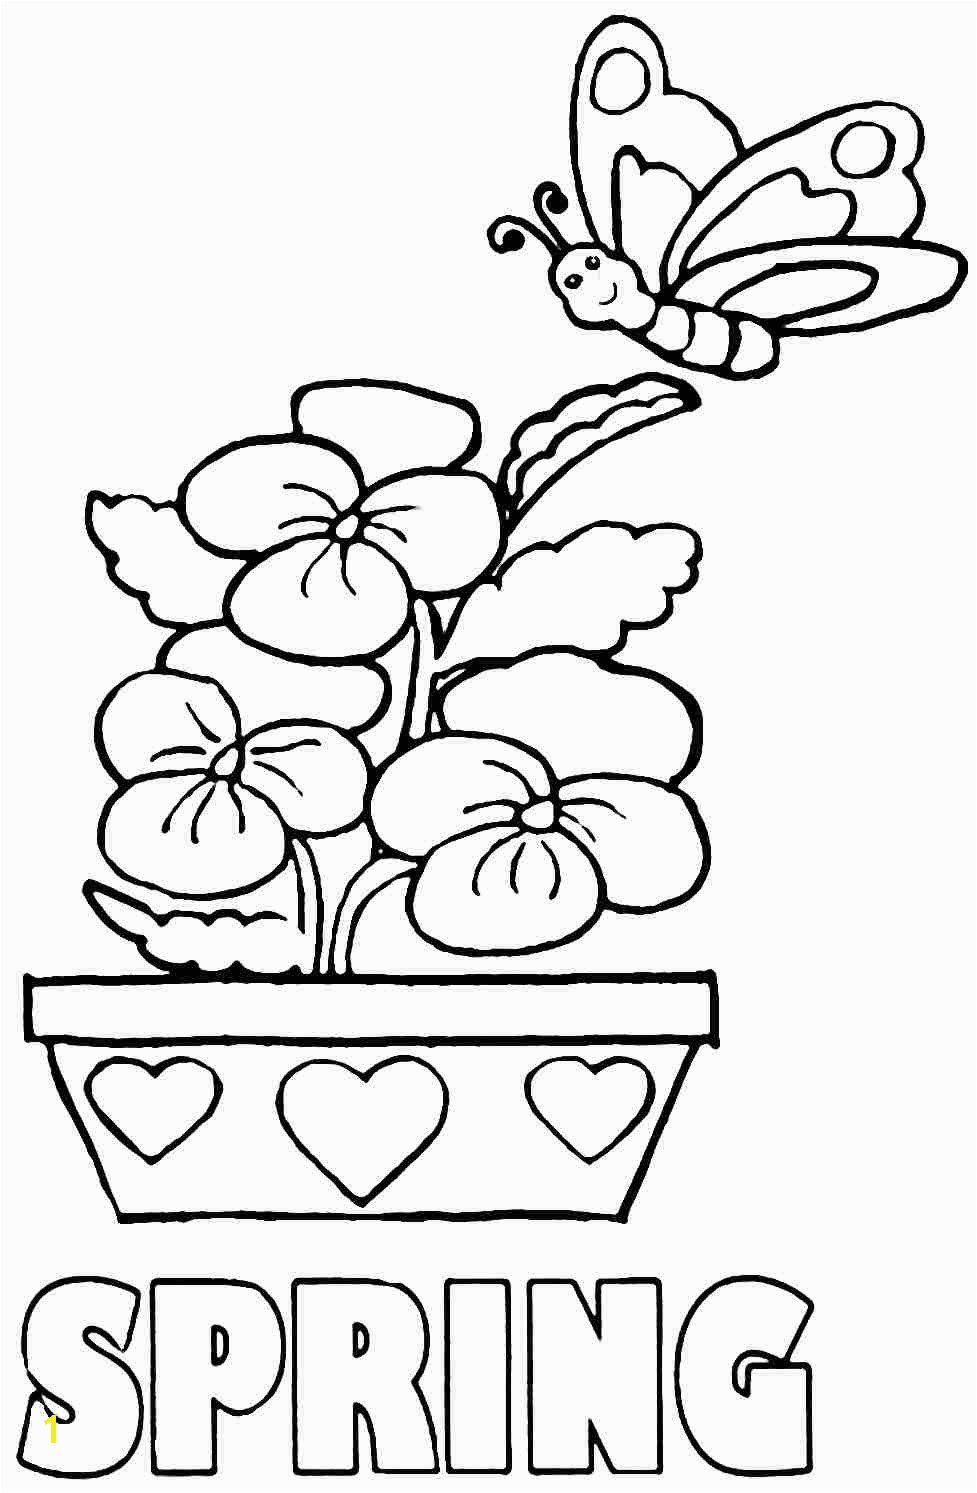 Bonanza Color Sheets For Spring Collection Activity Coloring Download Them And